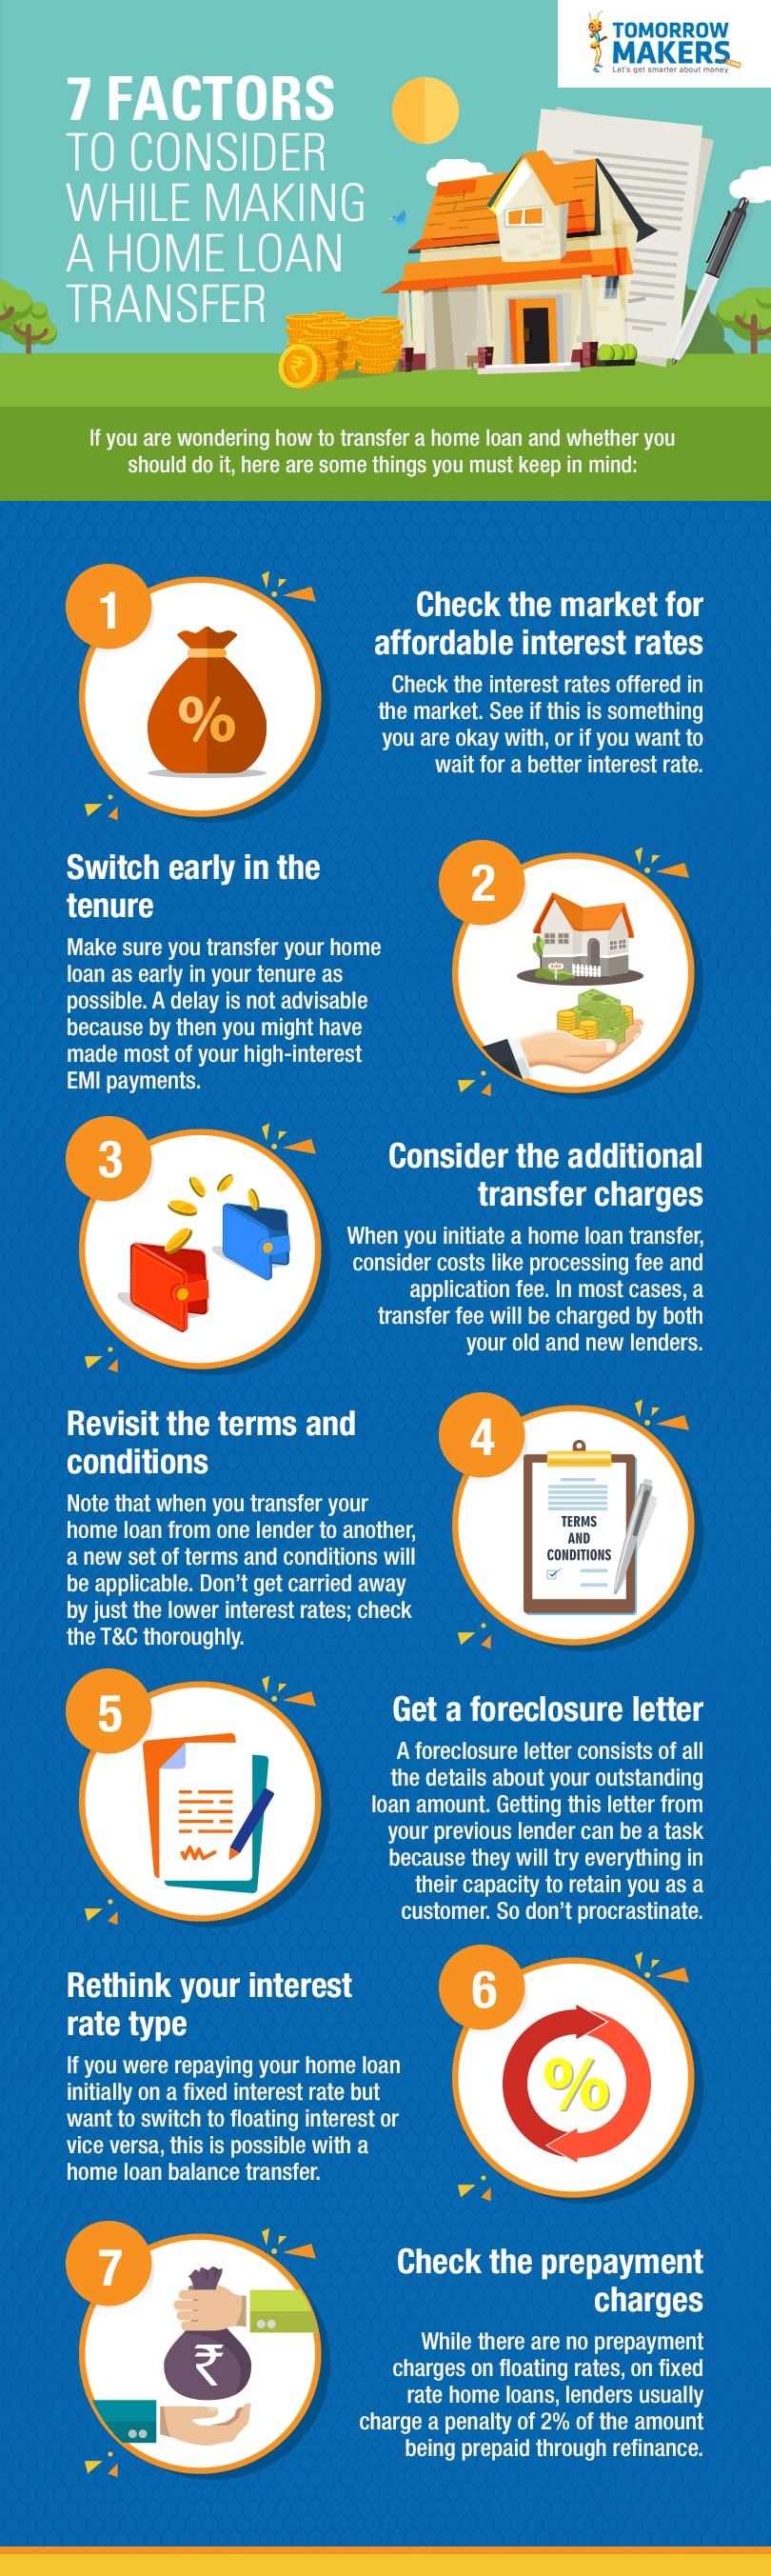 7 Factors to consider while making a home loan transfer